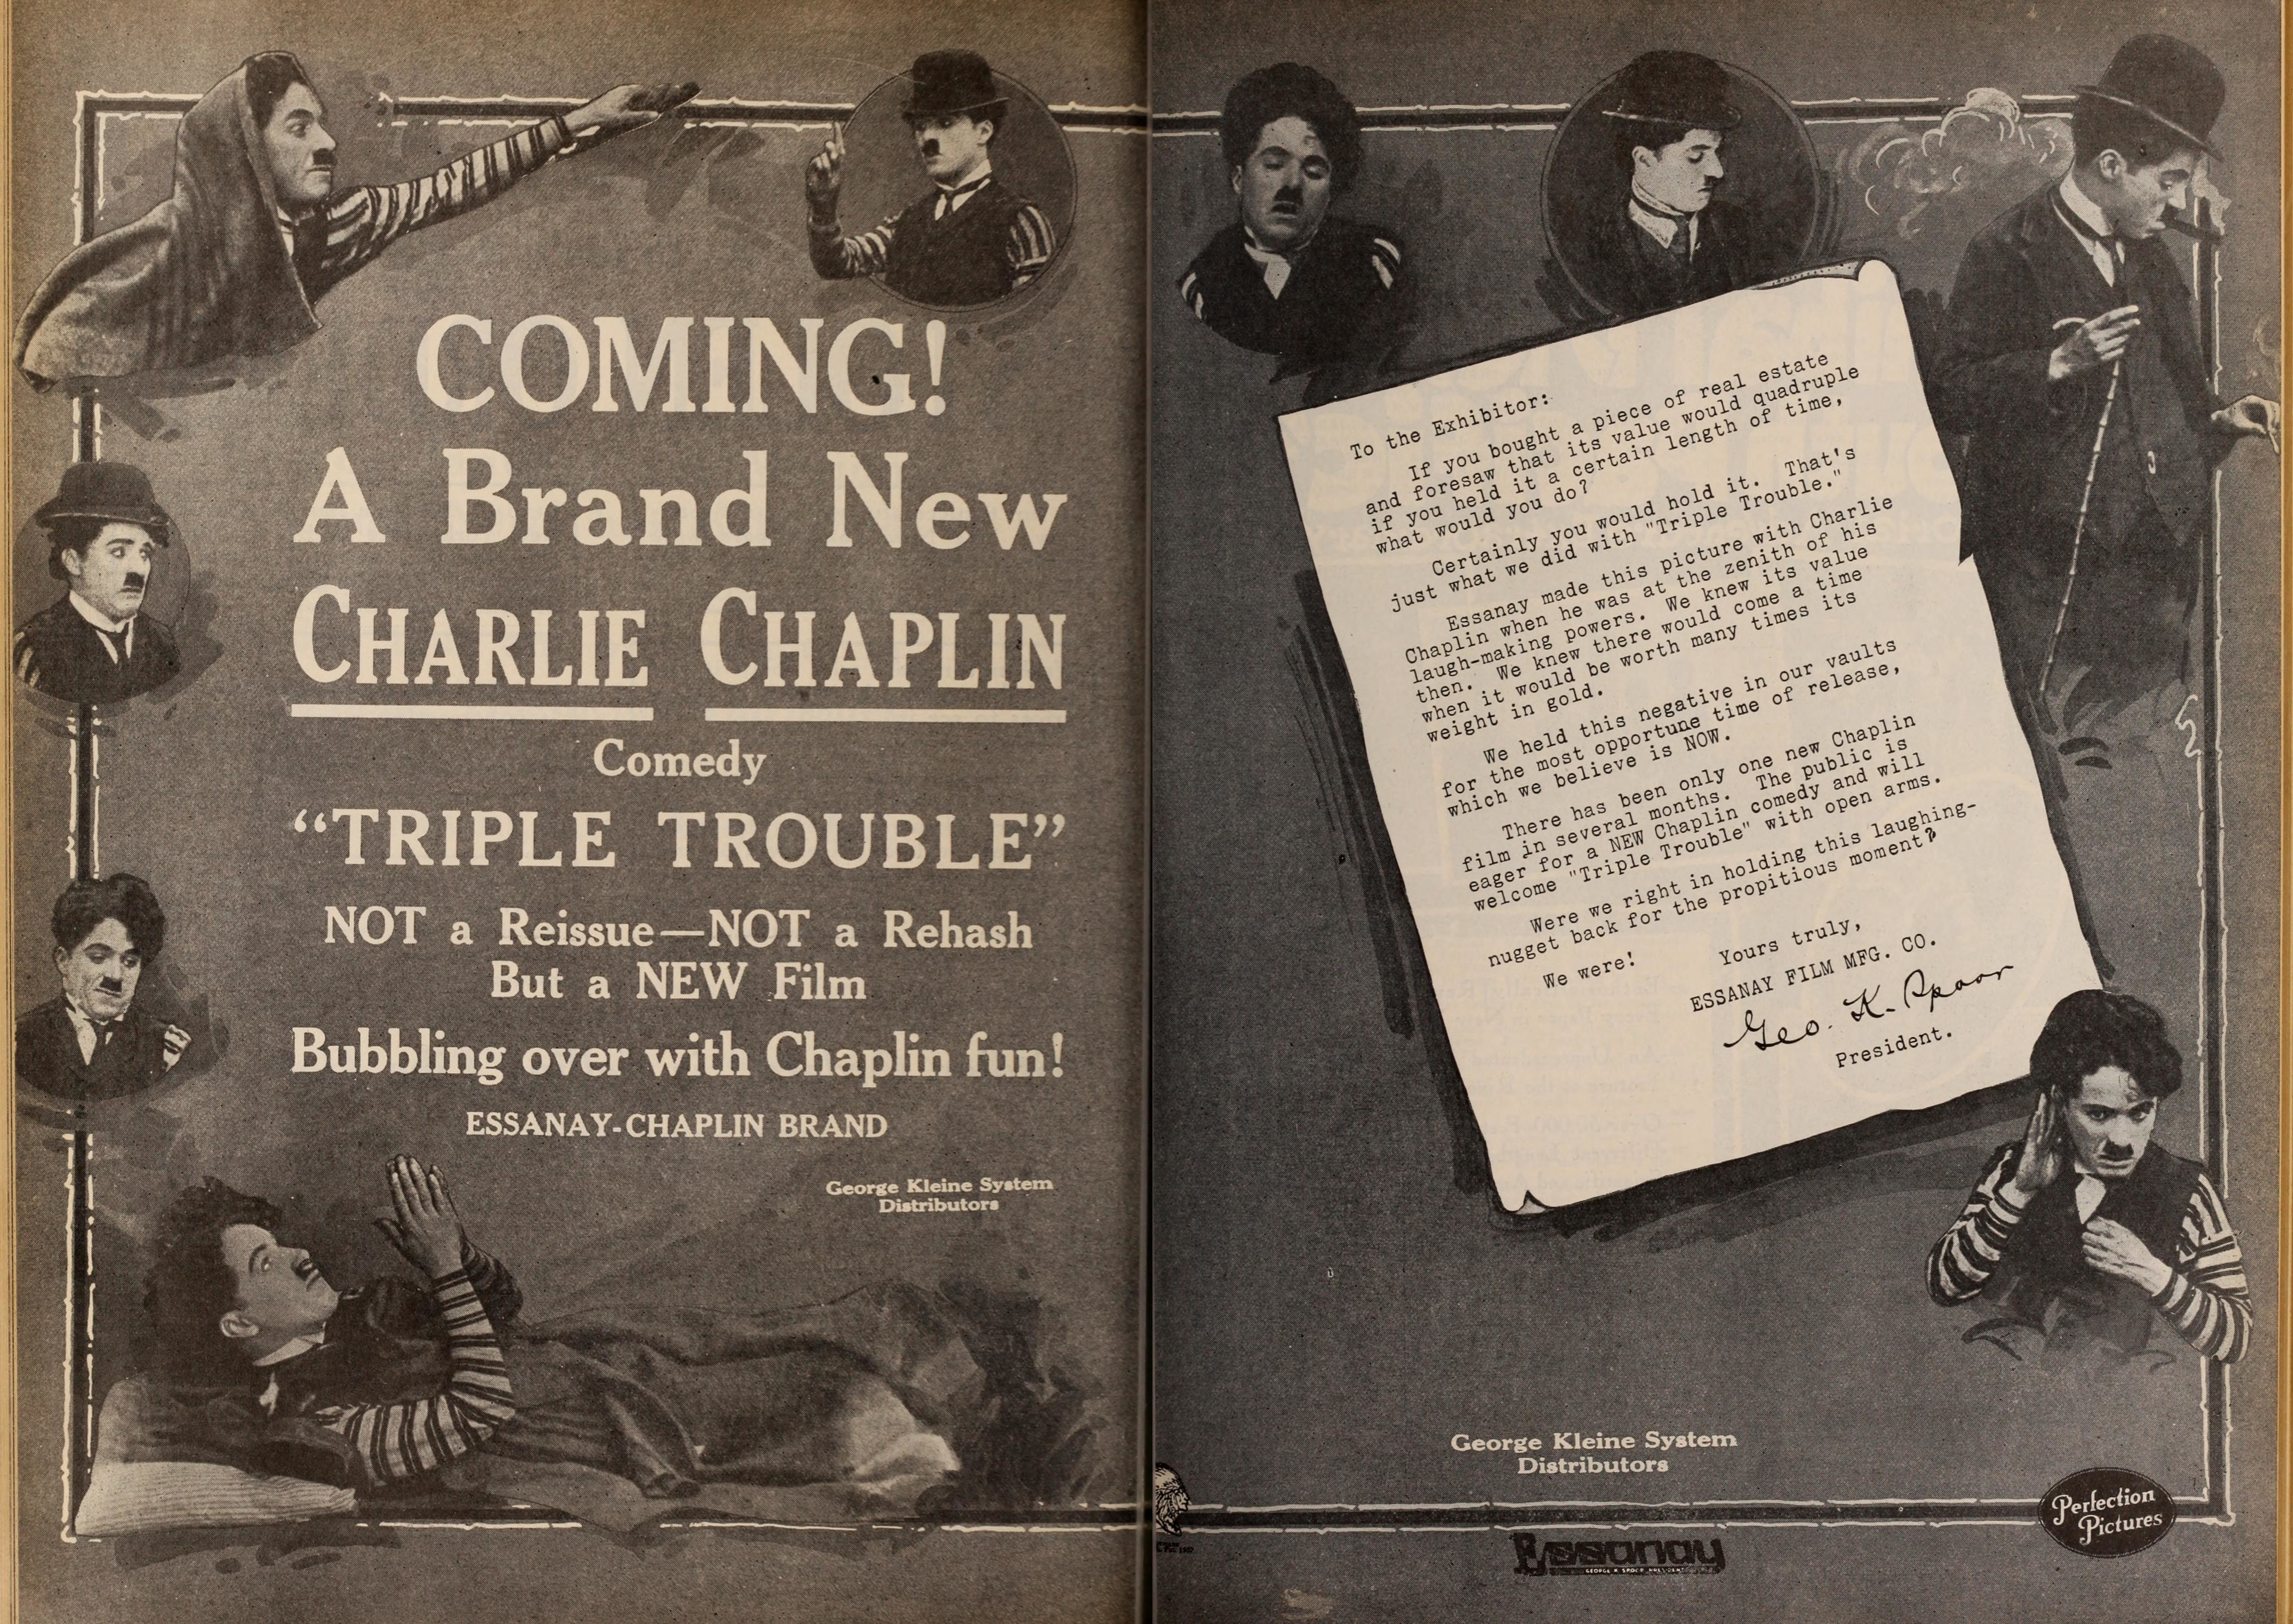 Triple Trouble advert, Motion Picture News, August 3, 1918, p.704-705